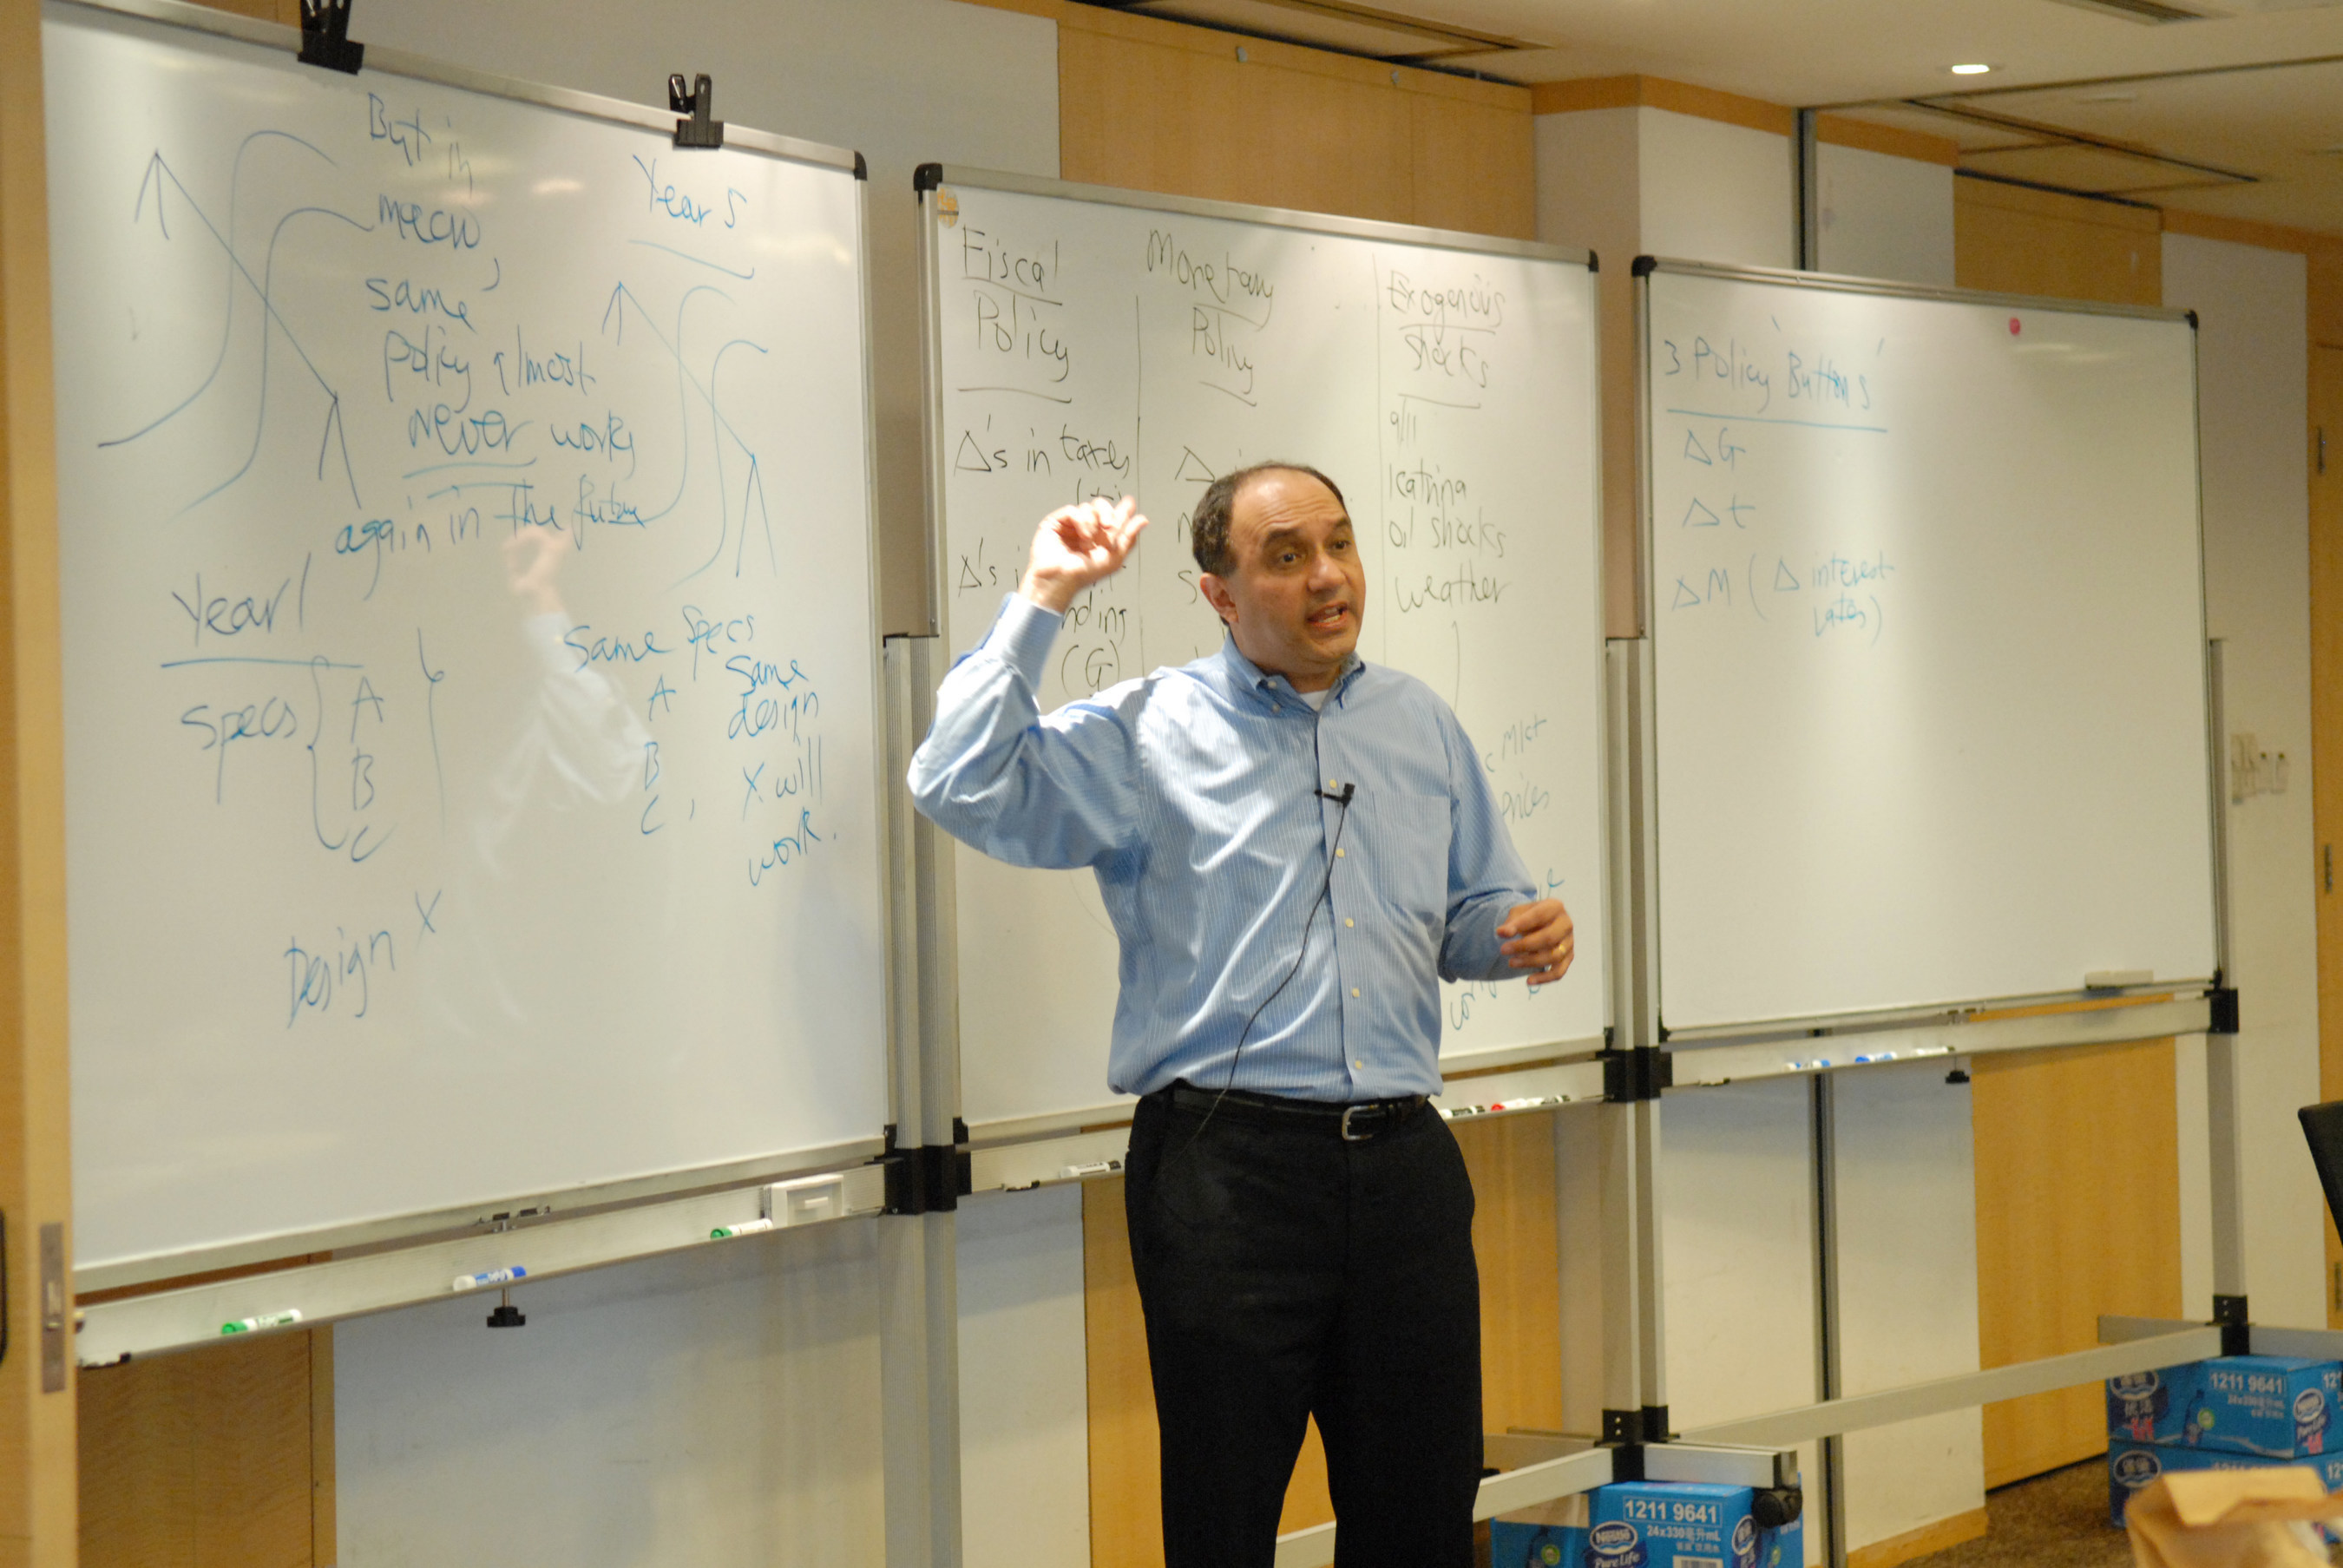 Rutgers Executive MBA program constantly updates the curriculum. Program director Farrokh Langdana shown teaching in the photo, is the recipient of the Horace dePodwin Research Award and more than 35 teaching awards, including the highest possible teaching award at Rutgers University - the Warren I. Susman Award.